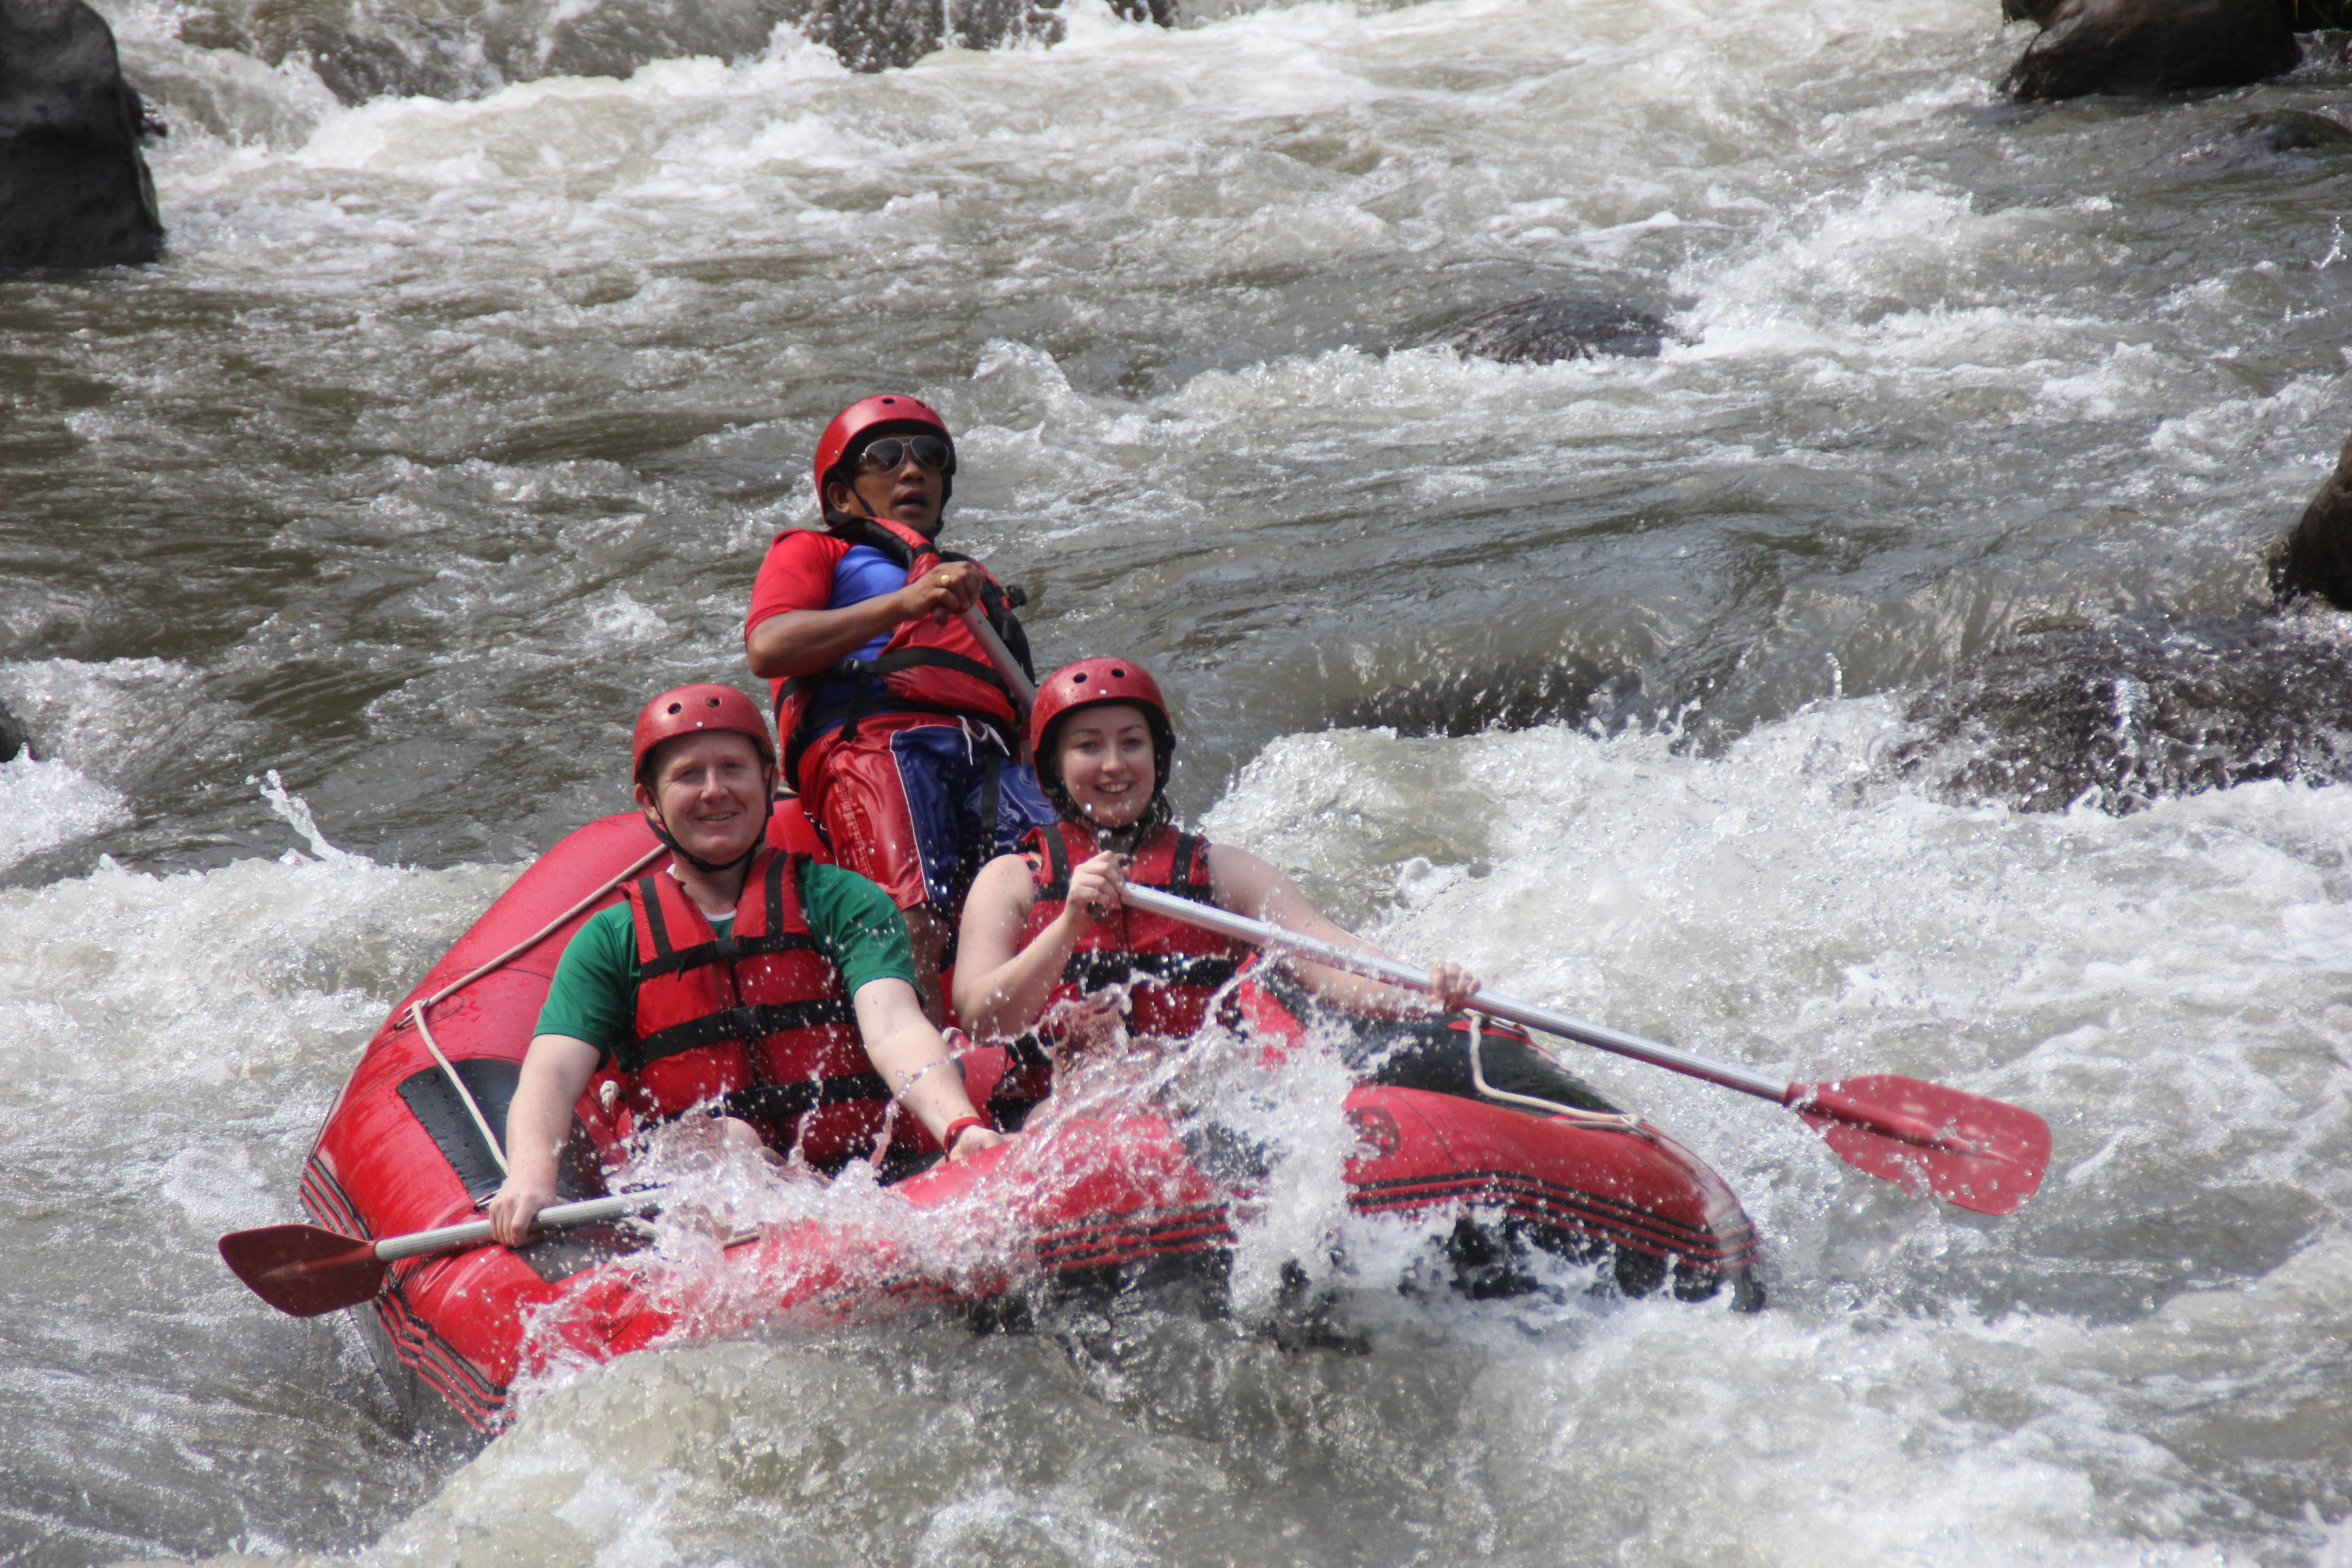 TRAVEL: WHITE WATER RAFTING